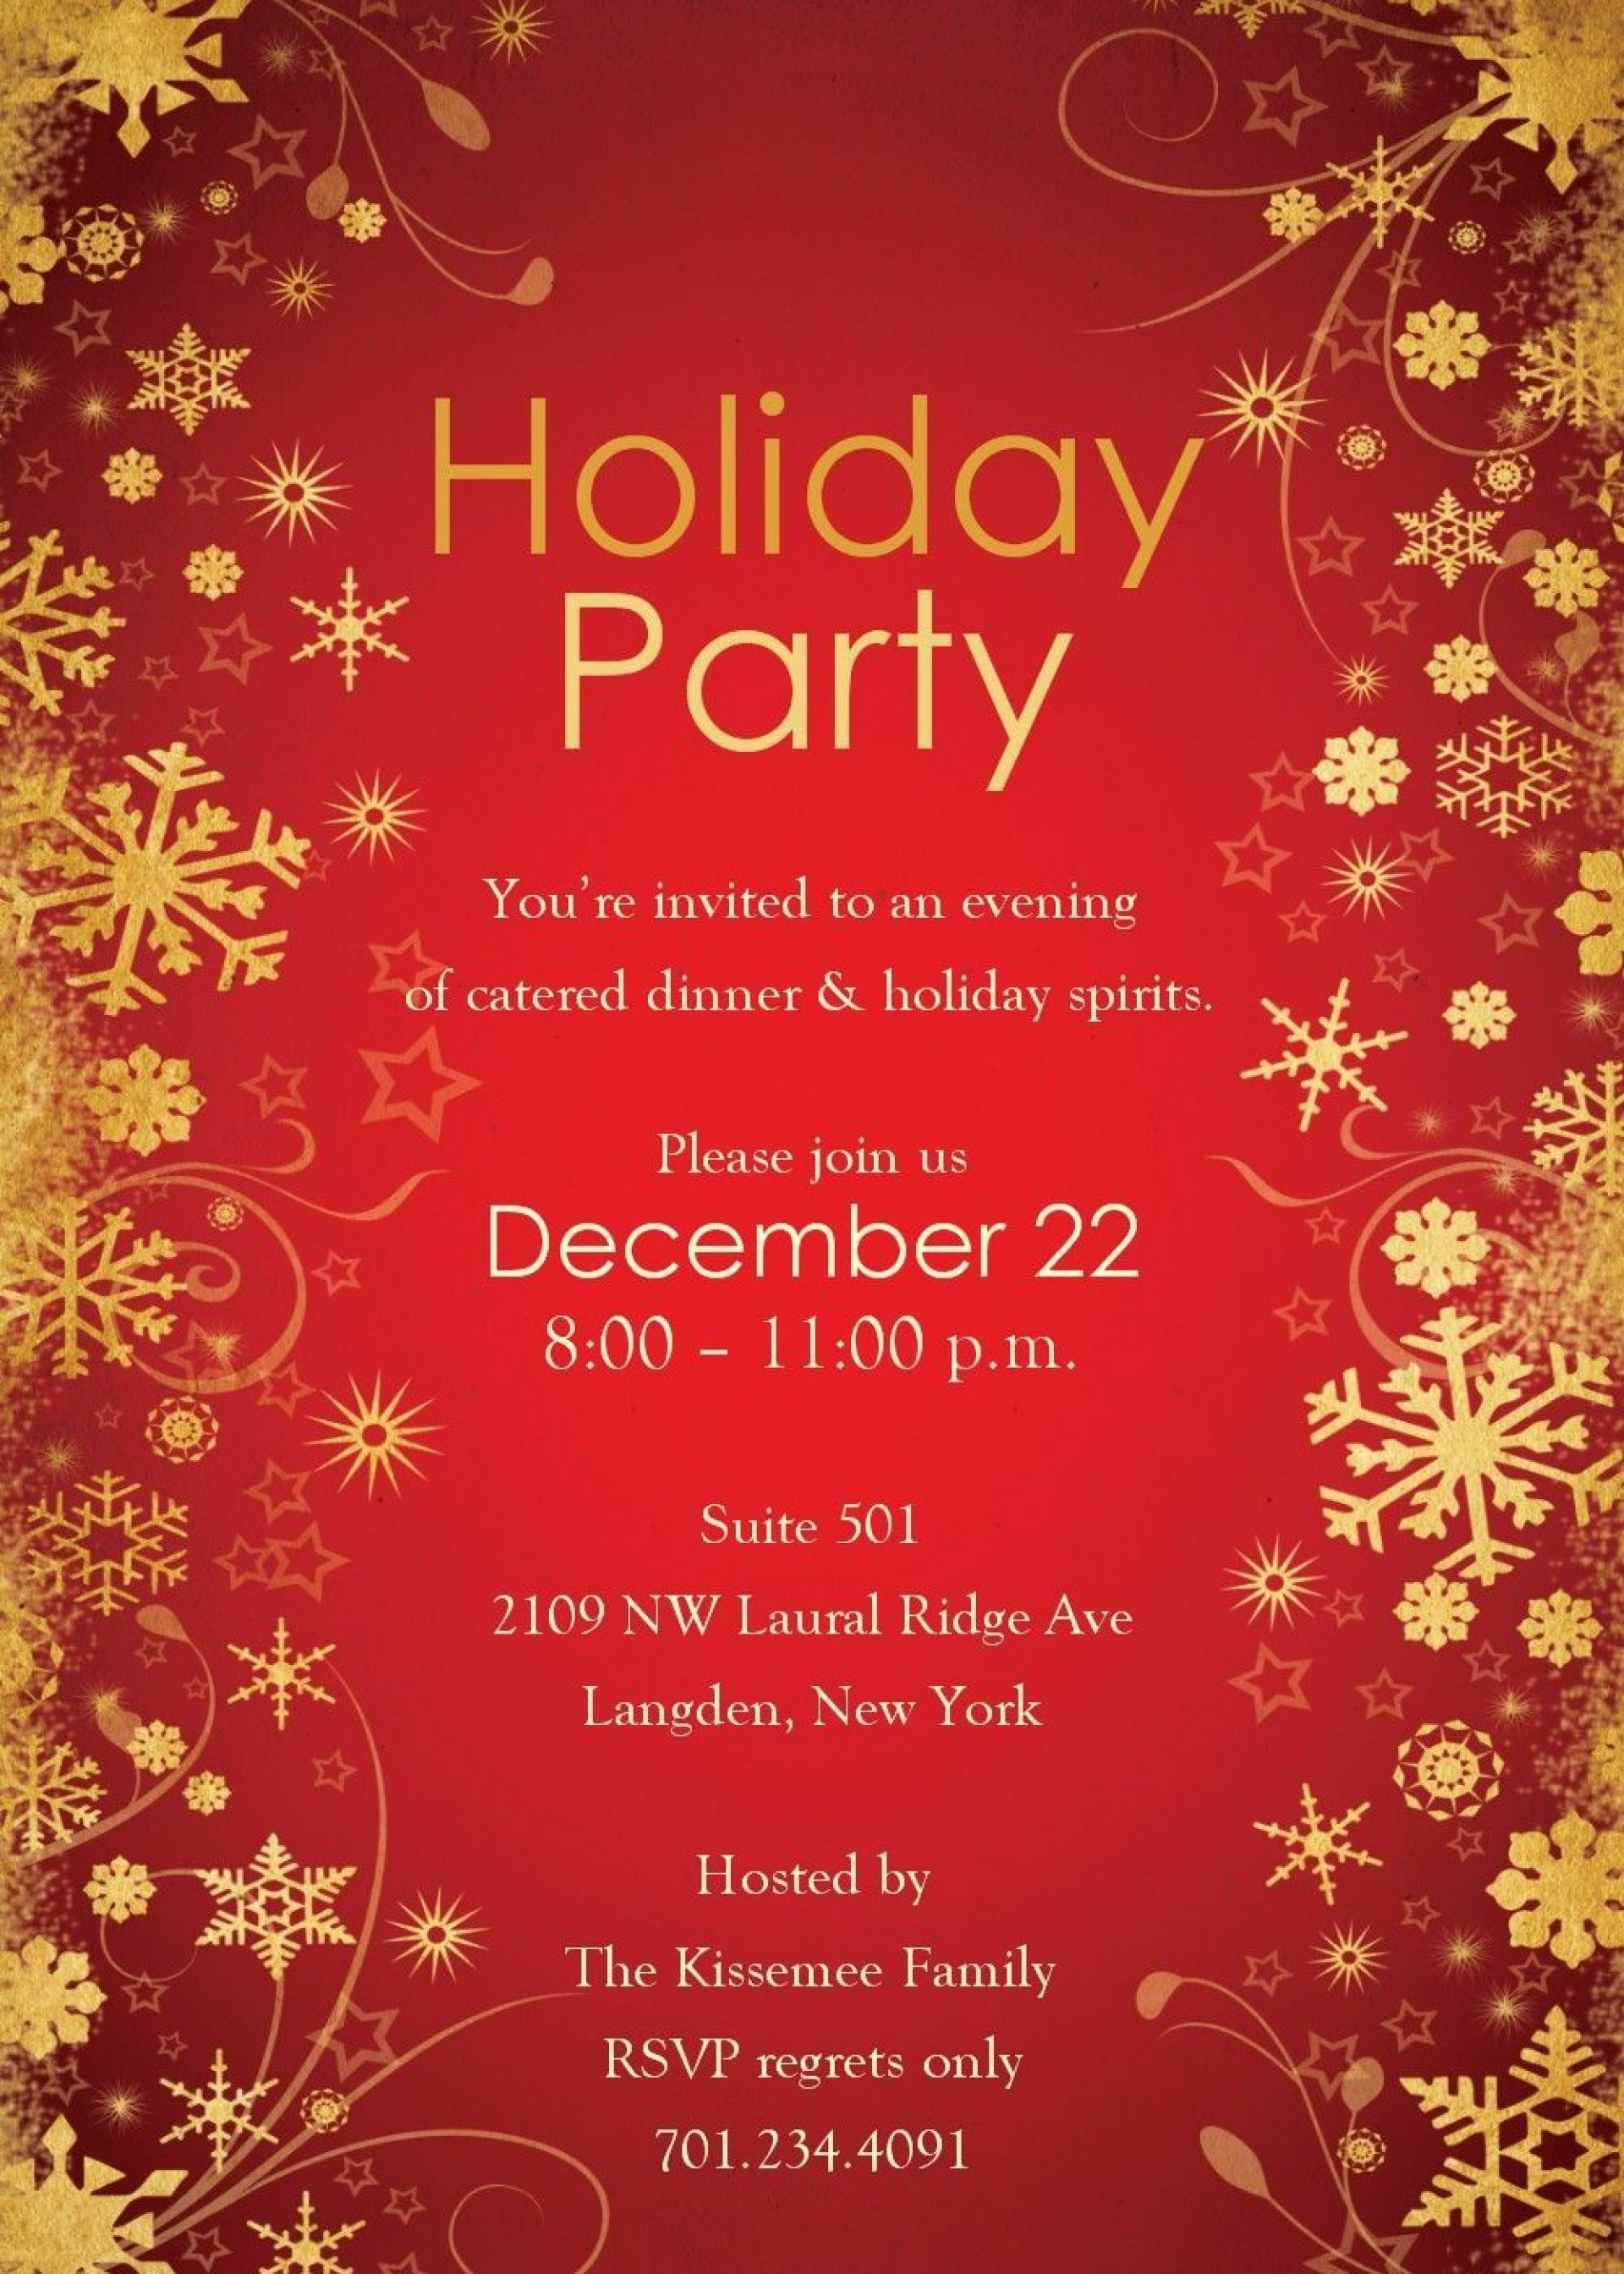 005 Unusual Xma Party Invite Template Free Highest Quality  Holiday Invitation Word Download Christma1920